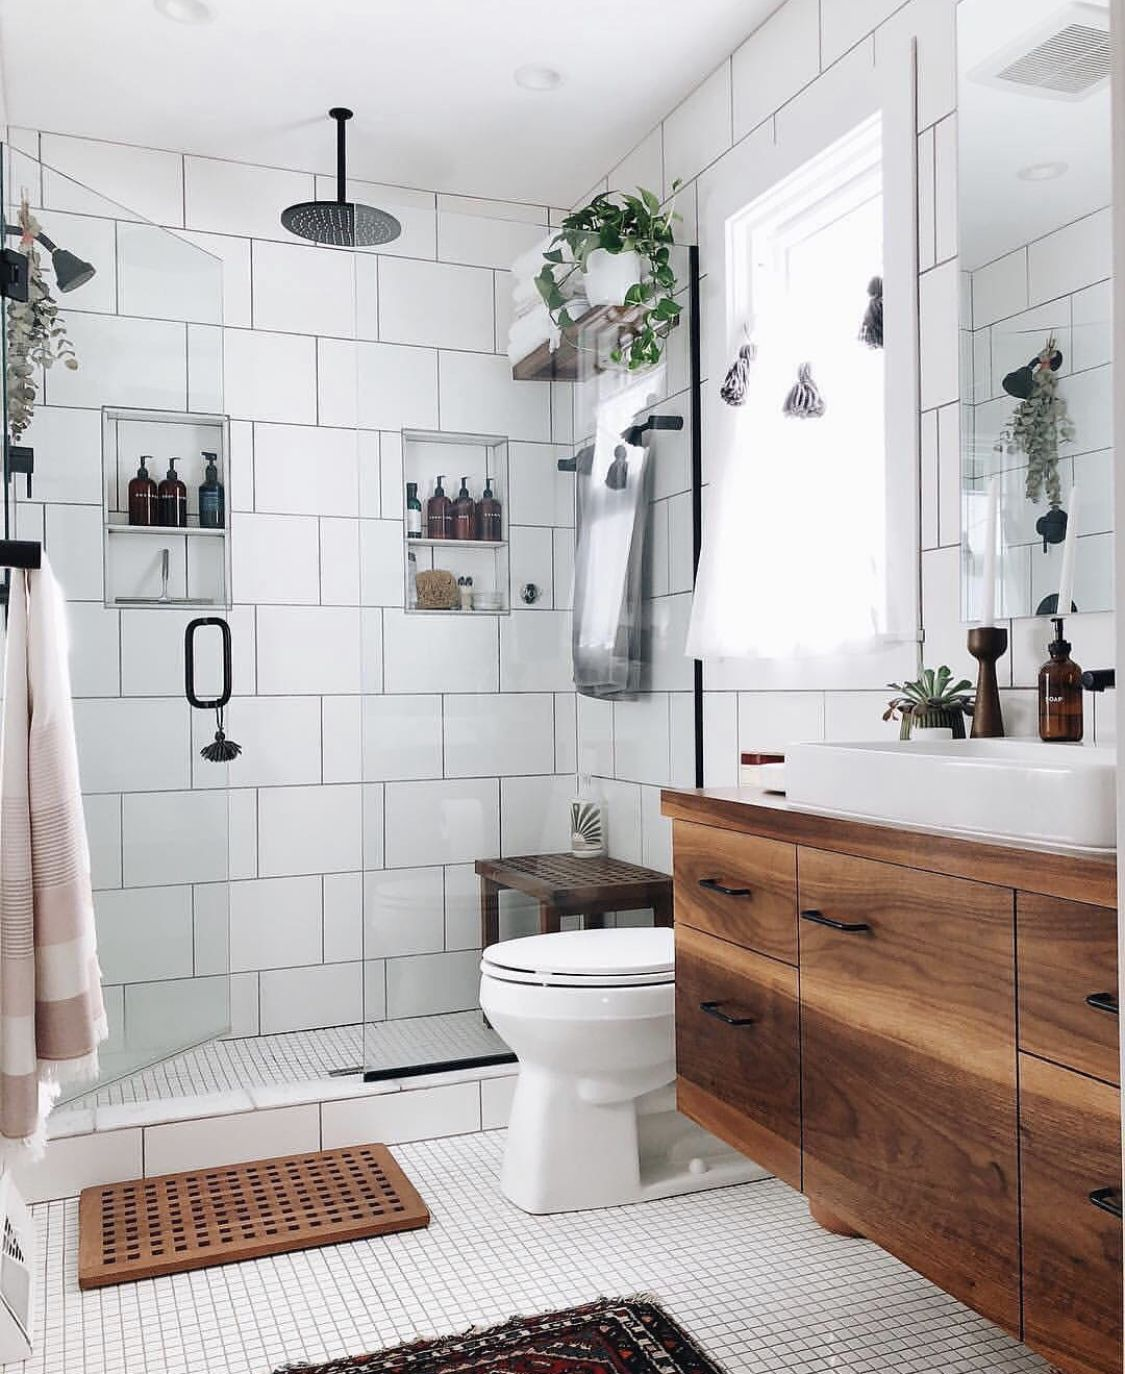 𝐩𝐢𝐧𝐭𝐞𝐫𝐞𝐬𝐭 𝐫𝐚𝐢𝐠𝐚𝐧𝐜𝐥𝐚𝐫𝐞 𝐢𝐧𝐬𝐭𝐚 𝐫𝐚𝐢𝐠𝐚𝐧𝐱𝐜𝐥𝐚𝐫𝐞 Bathroom Inspiration Bright Bathroom Bathrooms Remodel